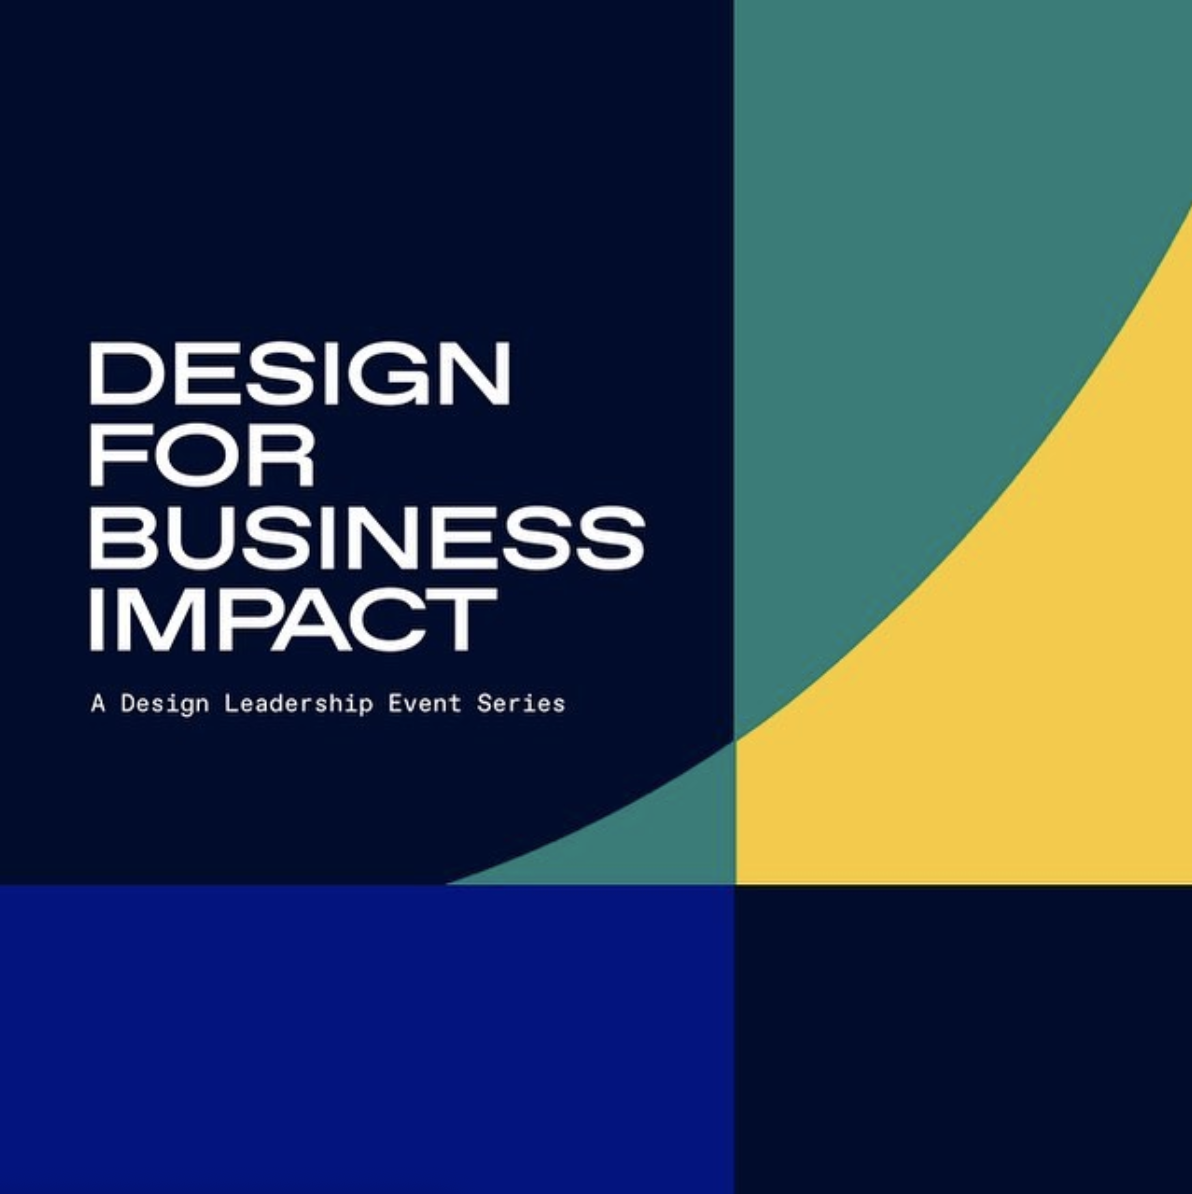 Designer Fund's Design for Business Impact — Strategy & Production